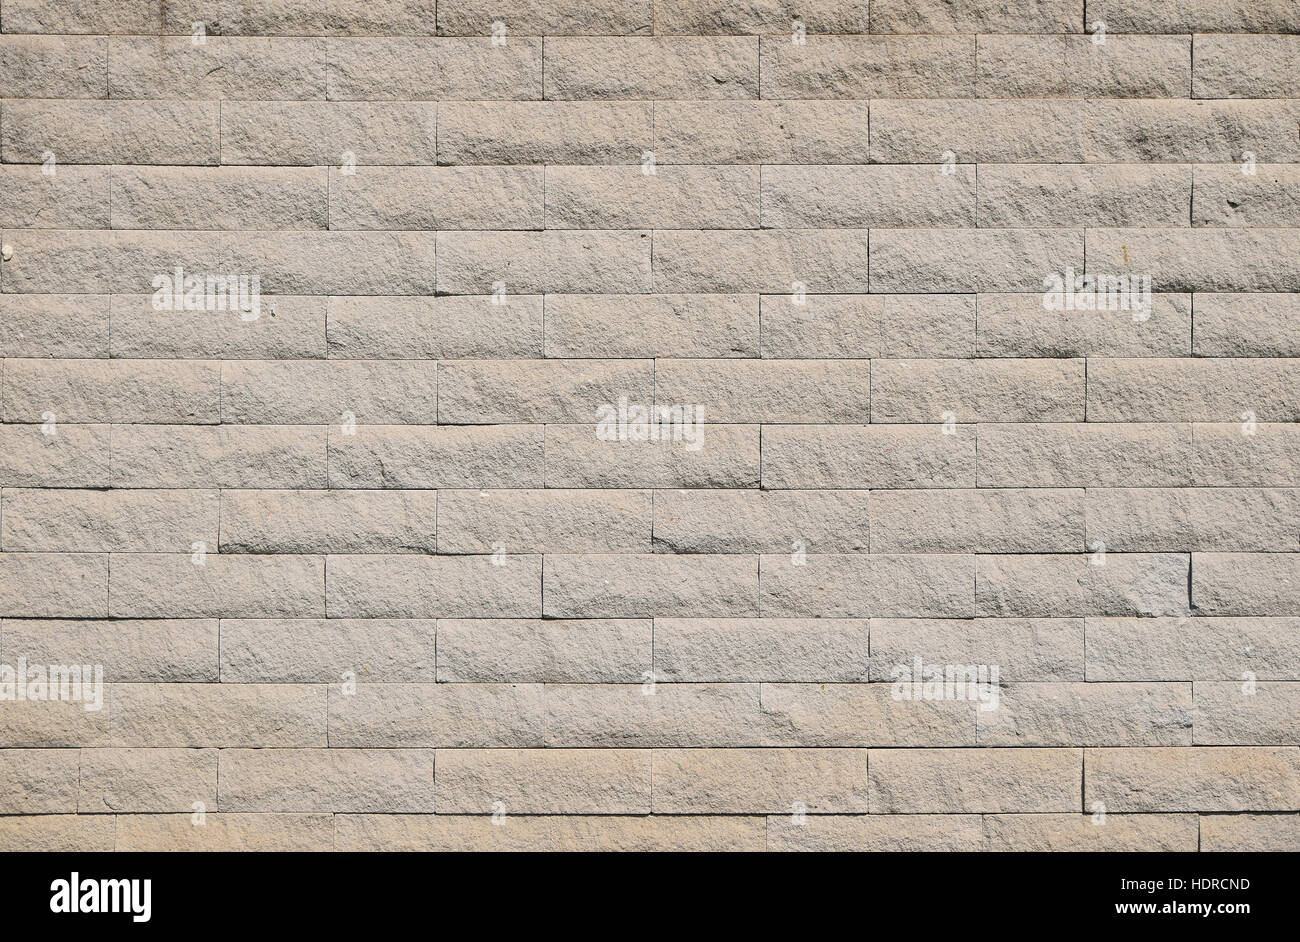 Beige white stone brick shaped tiles exterior wall for Exterior background